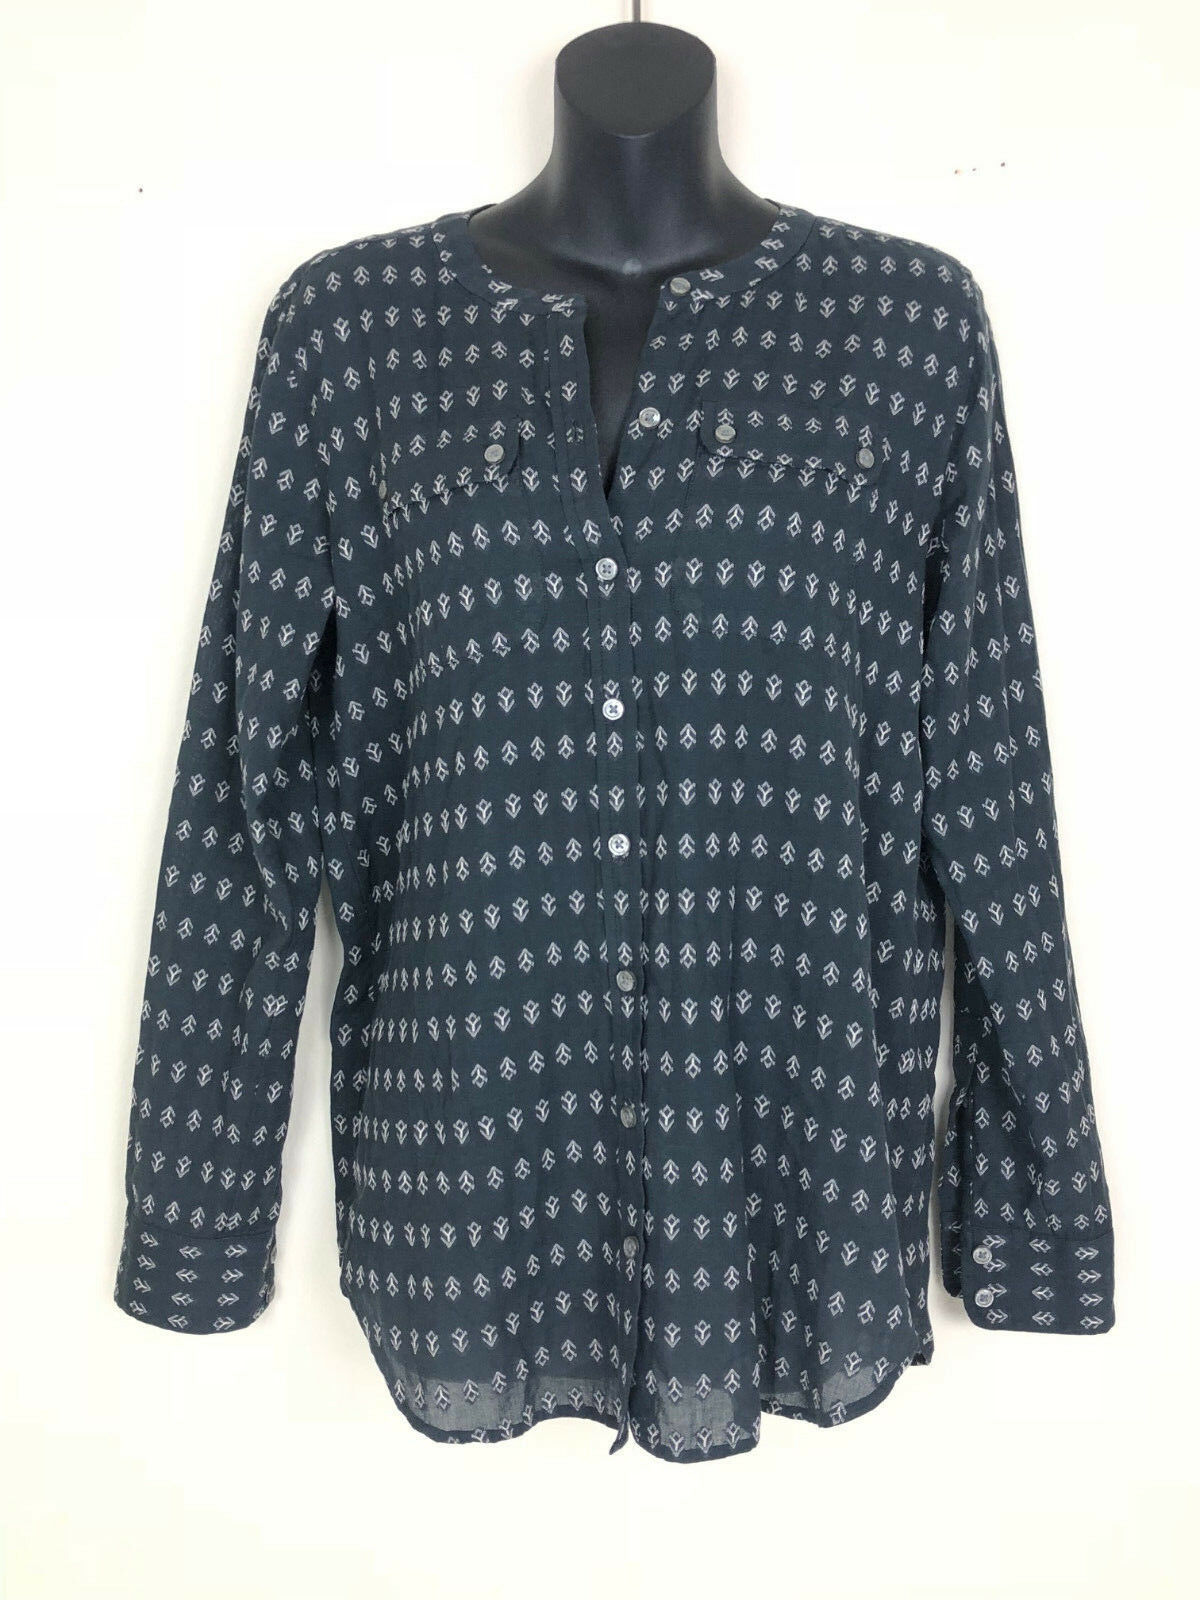 Ann Taylor Loft Shirt XS Navy bluee Long Sleeve Button Down - Free Gift